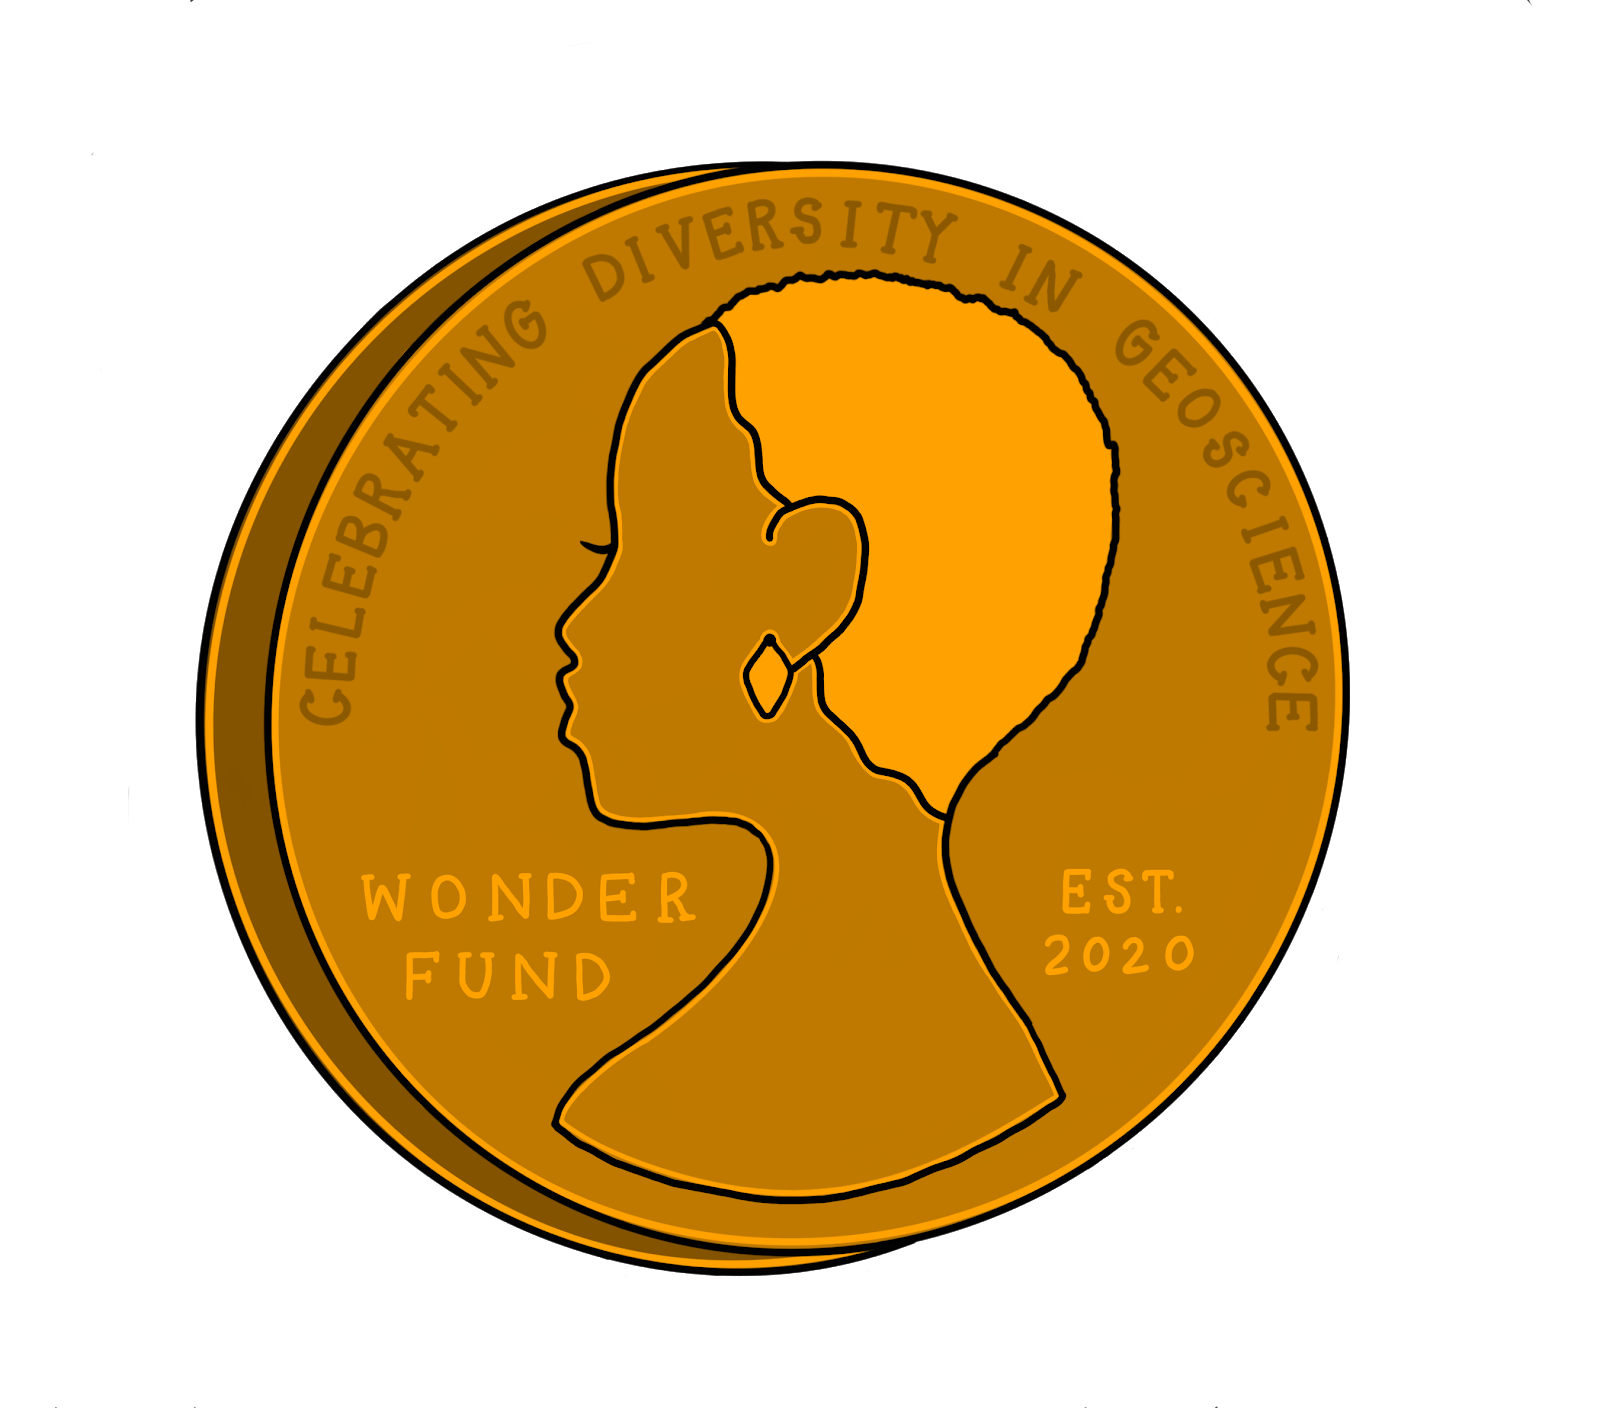 Wonder fund logo